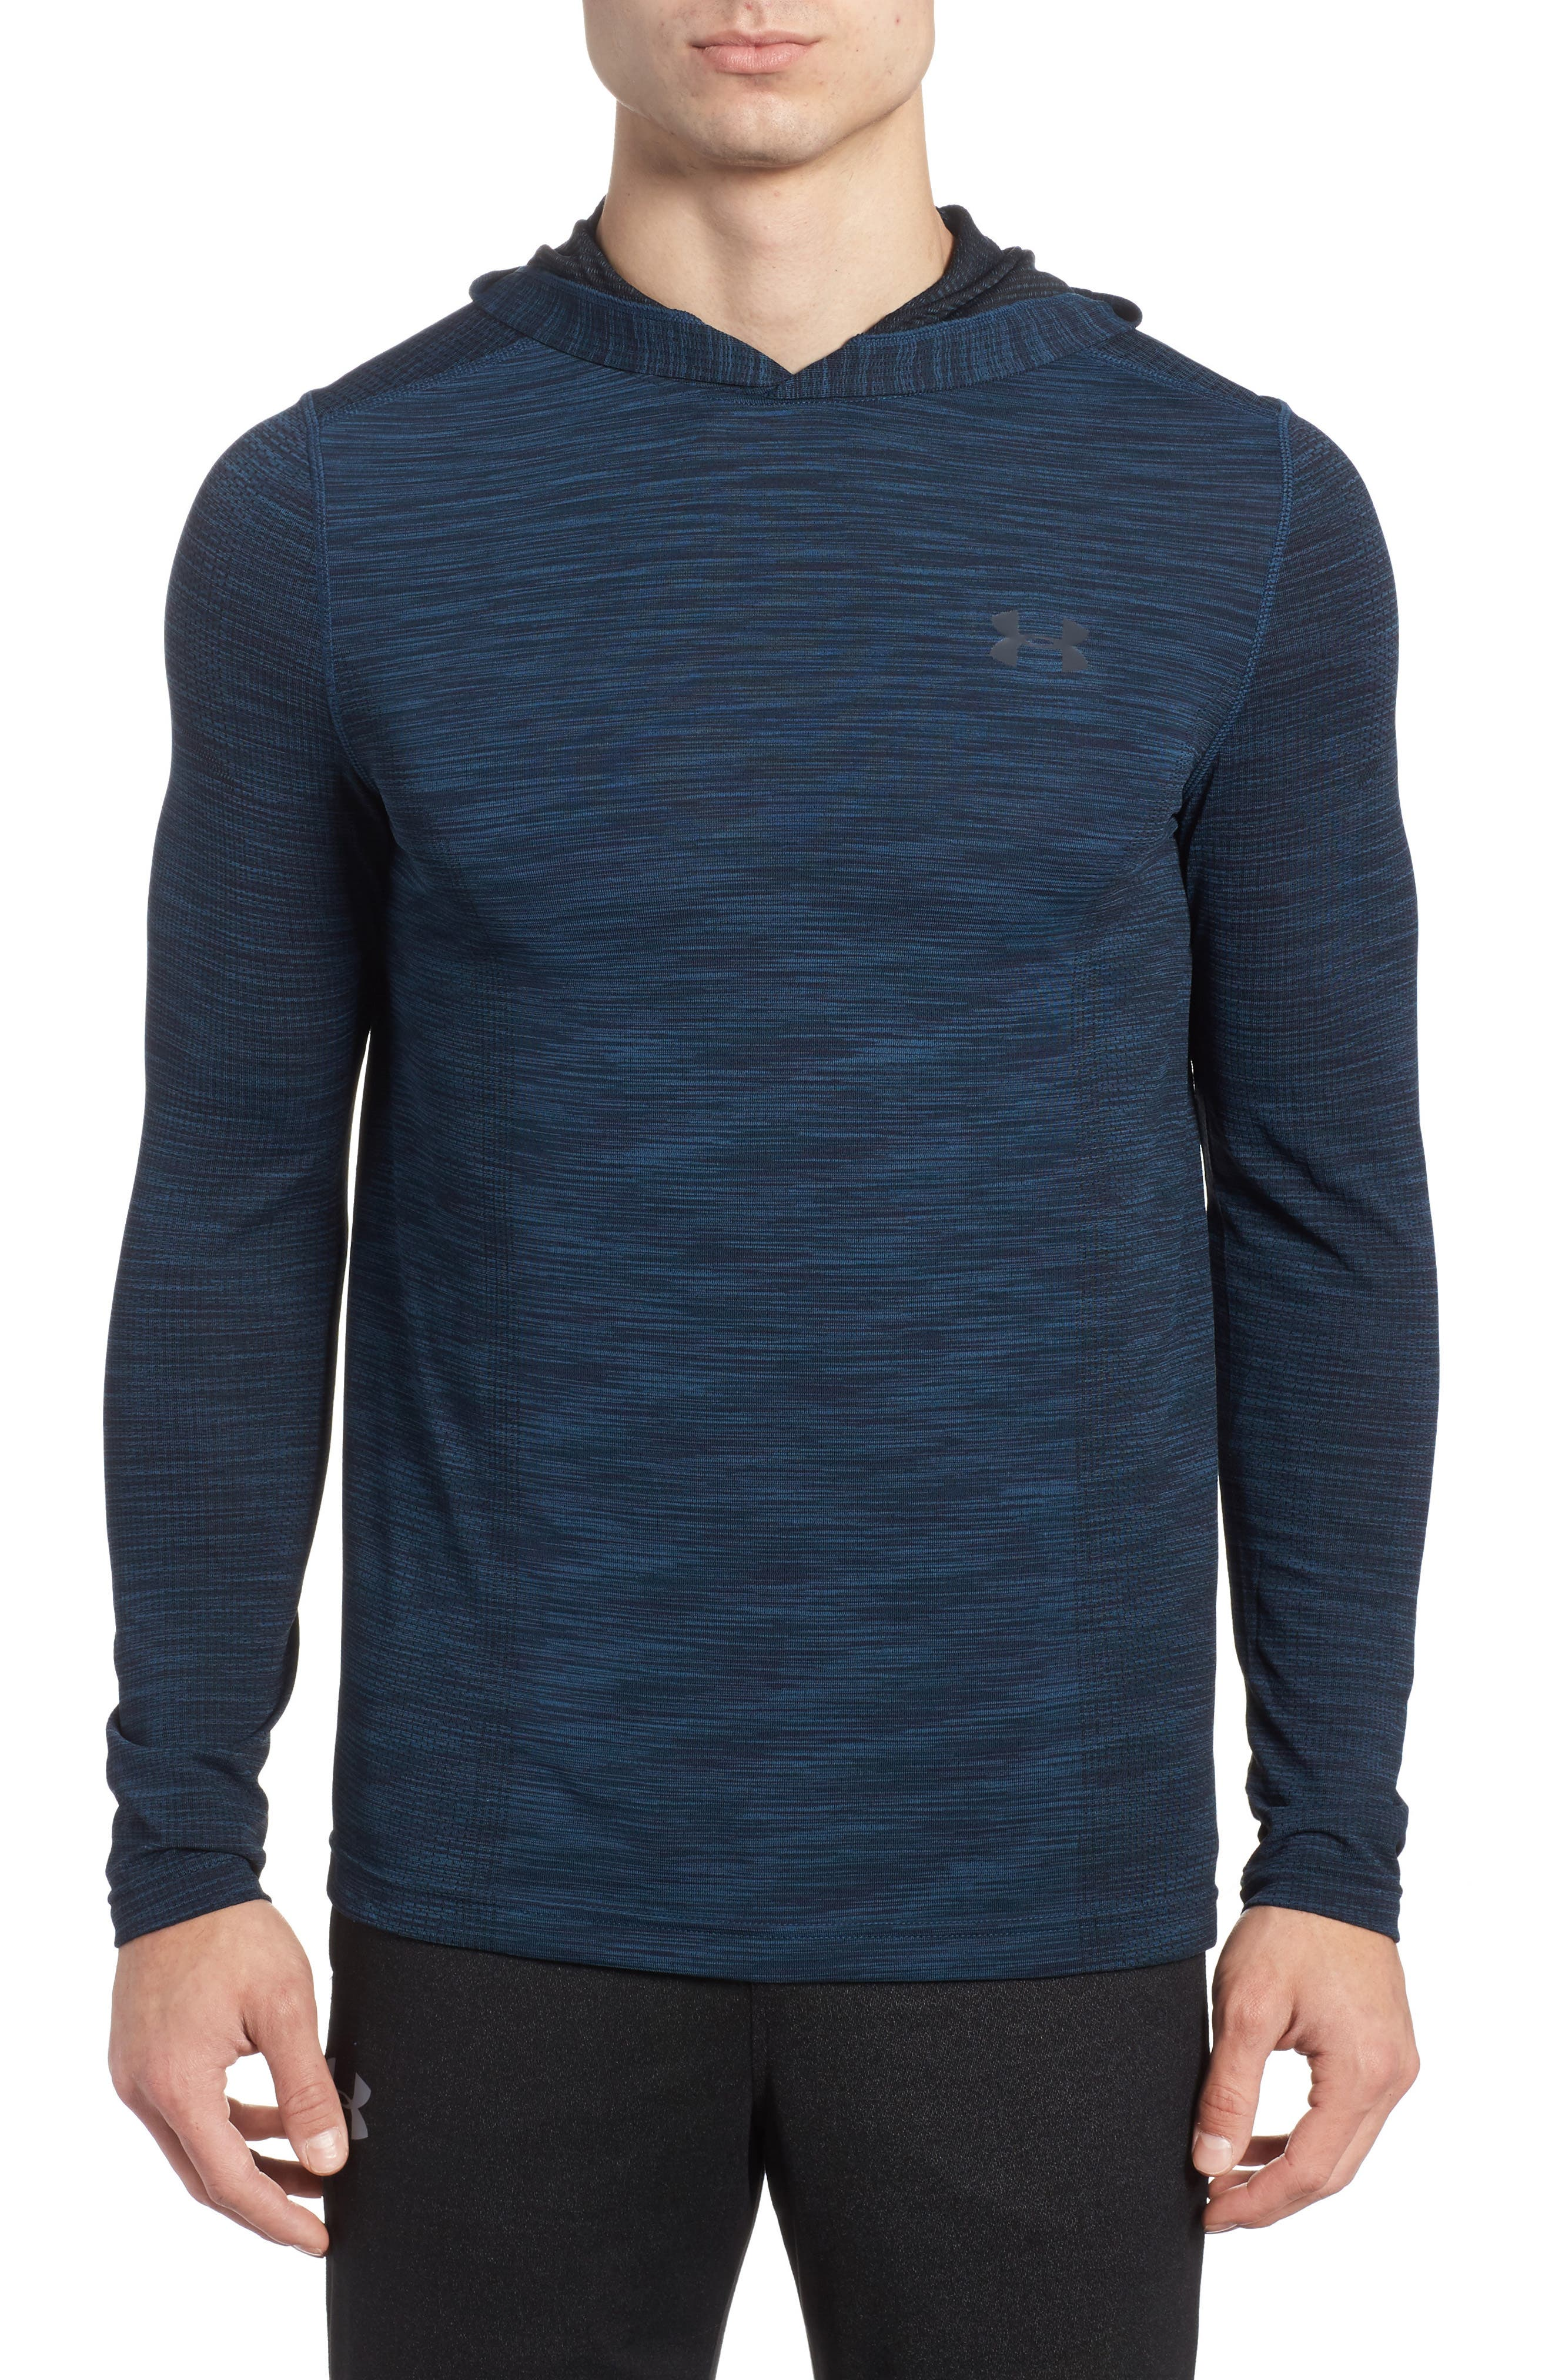 Threadbone Fitted Seamless Hoodie,                         Main,                         color, True Ink/ Anthracite